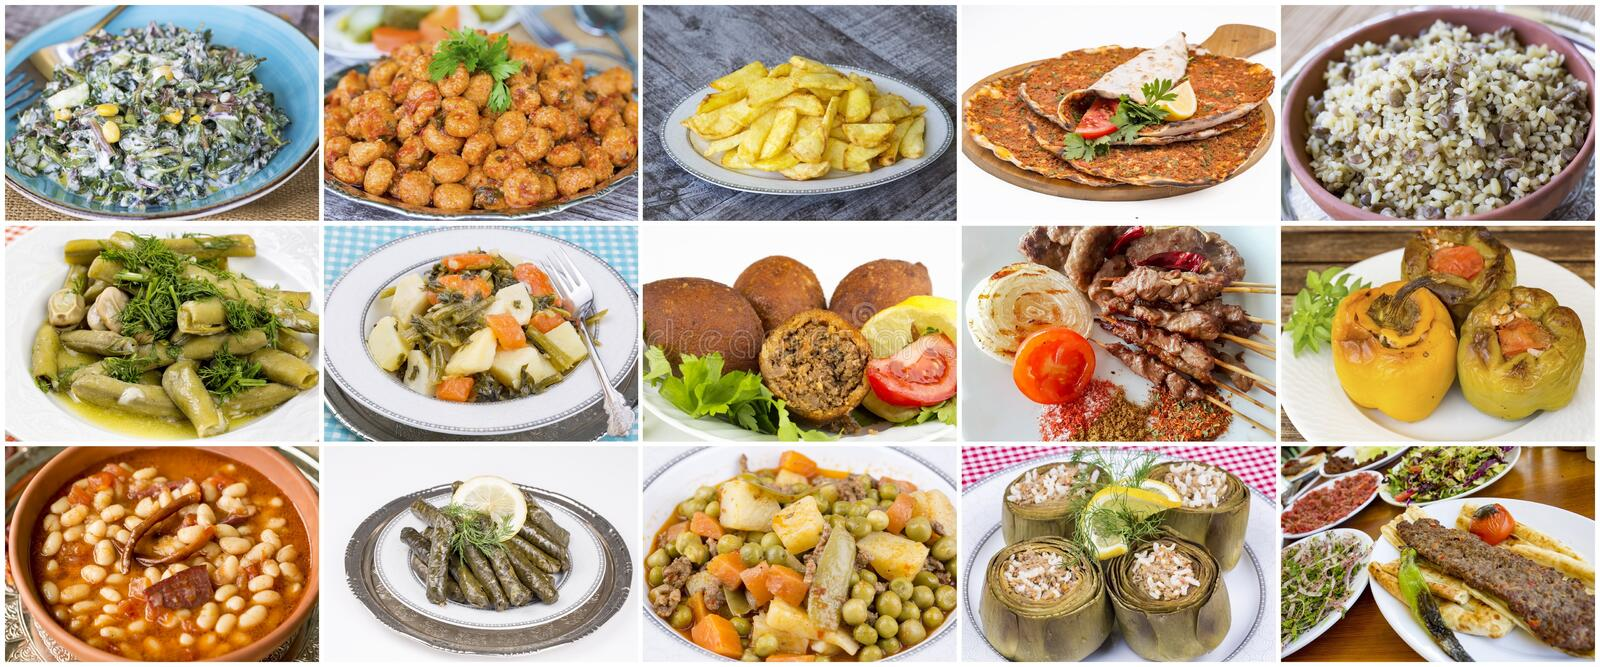 Traditional delicious Turkish foods collage. Food concept photo.  stock images